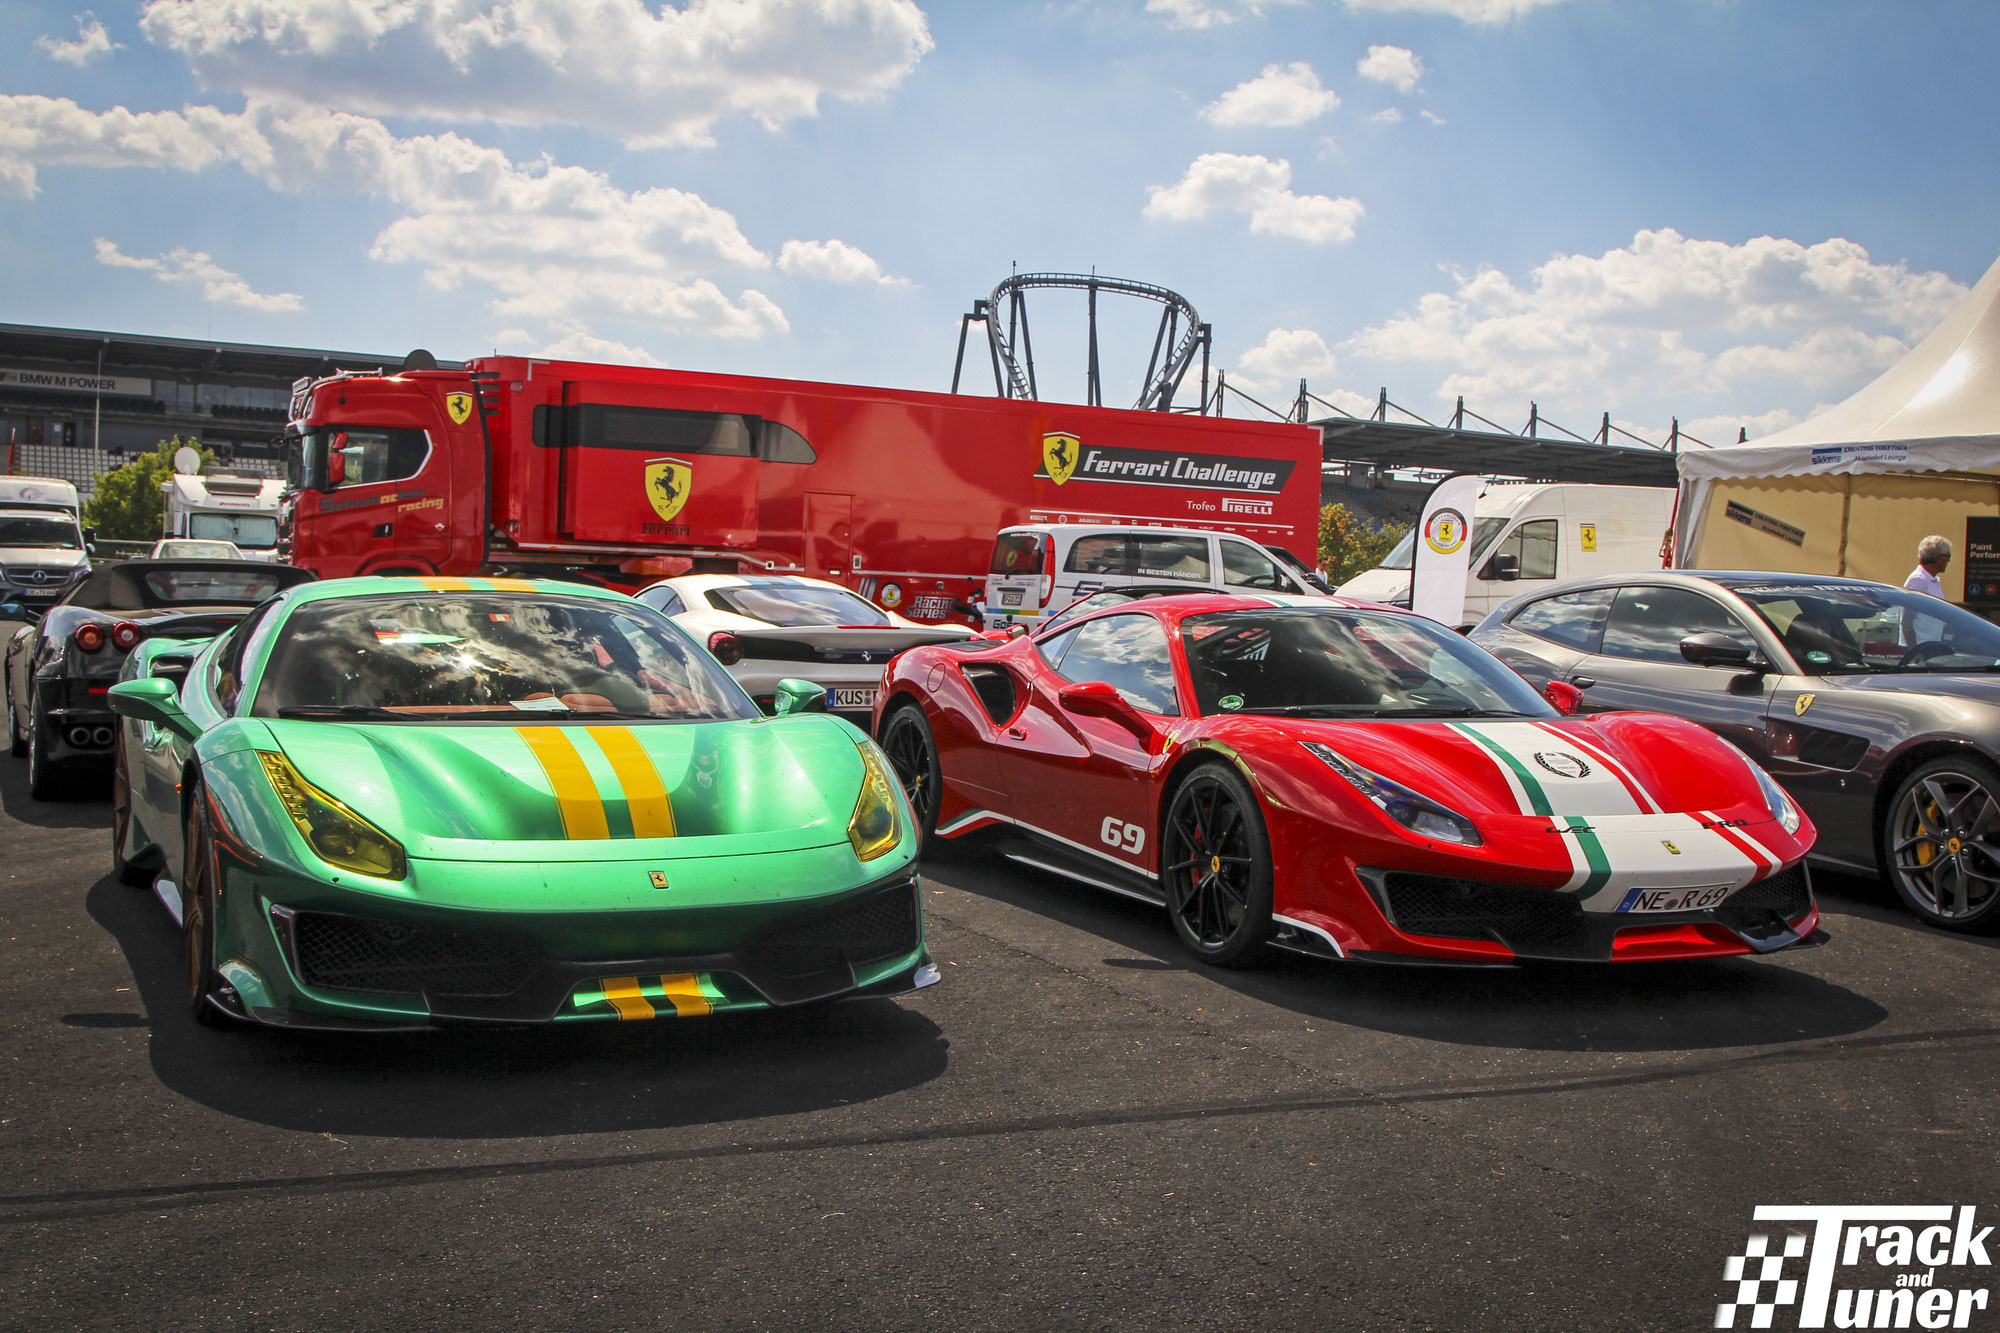 The AvD Oldtimer GP 2020: The Ferrari paddock